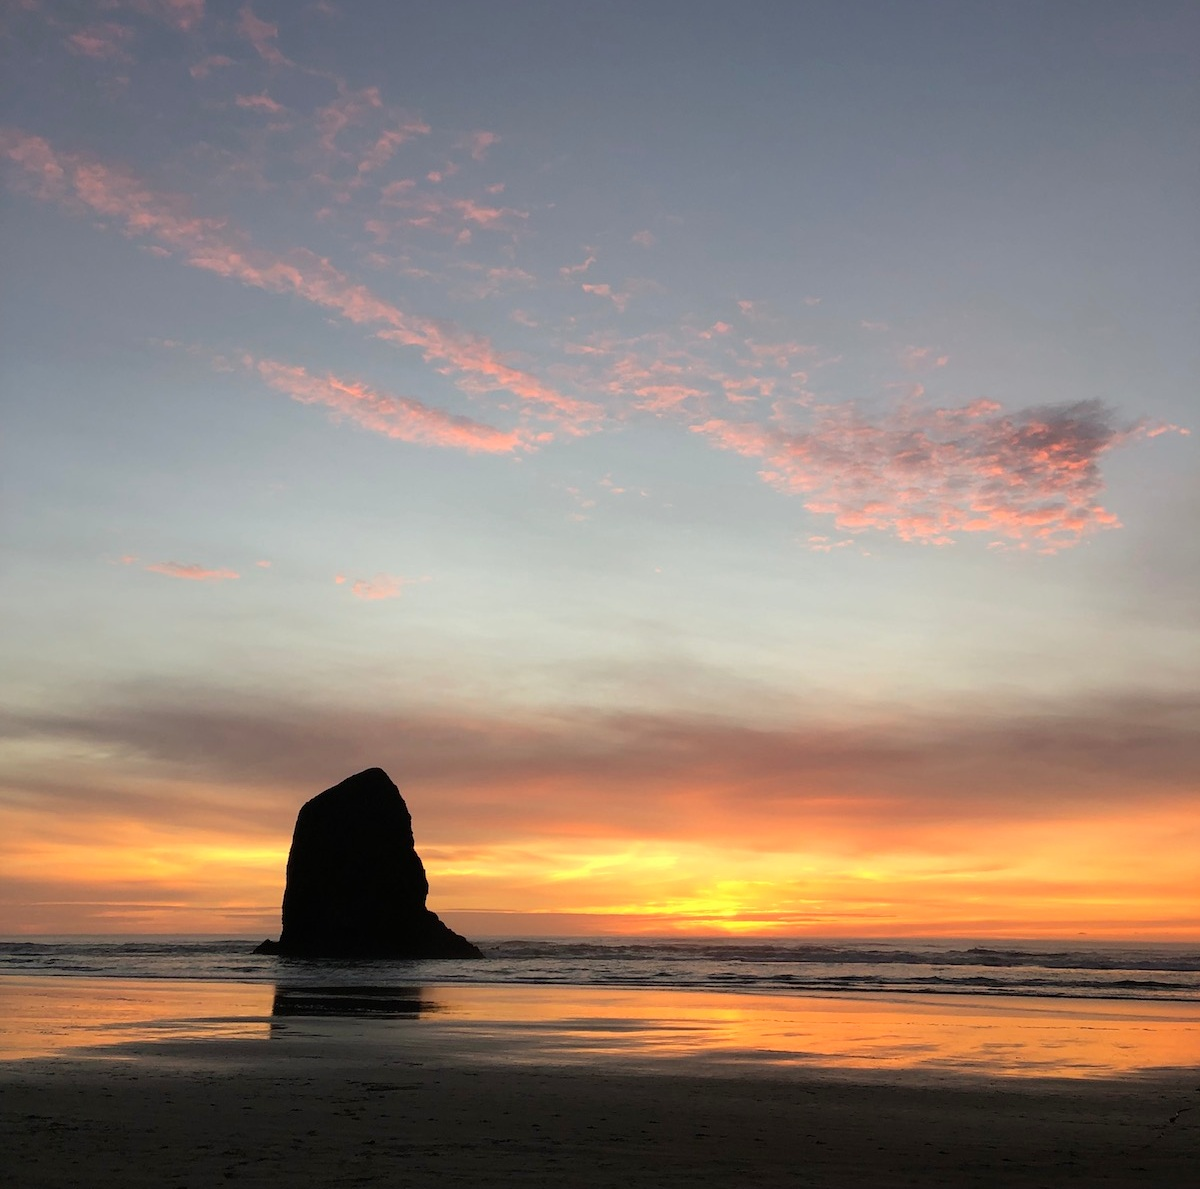 A sunset near Silver Point, south of Cannon Beach, Oregon